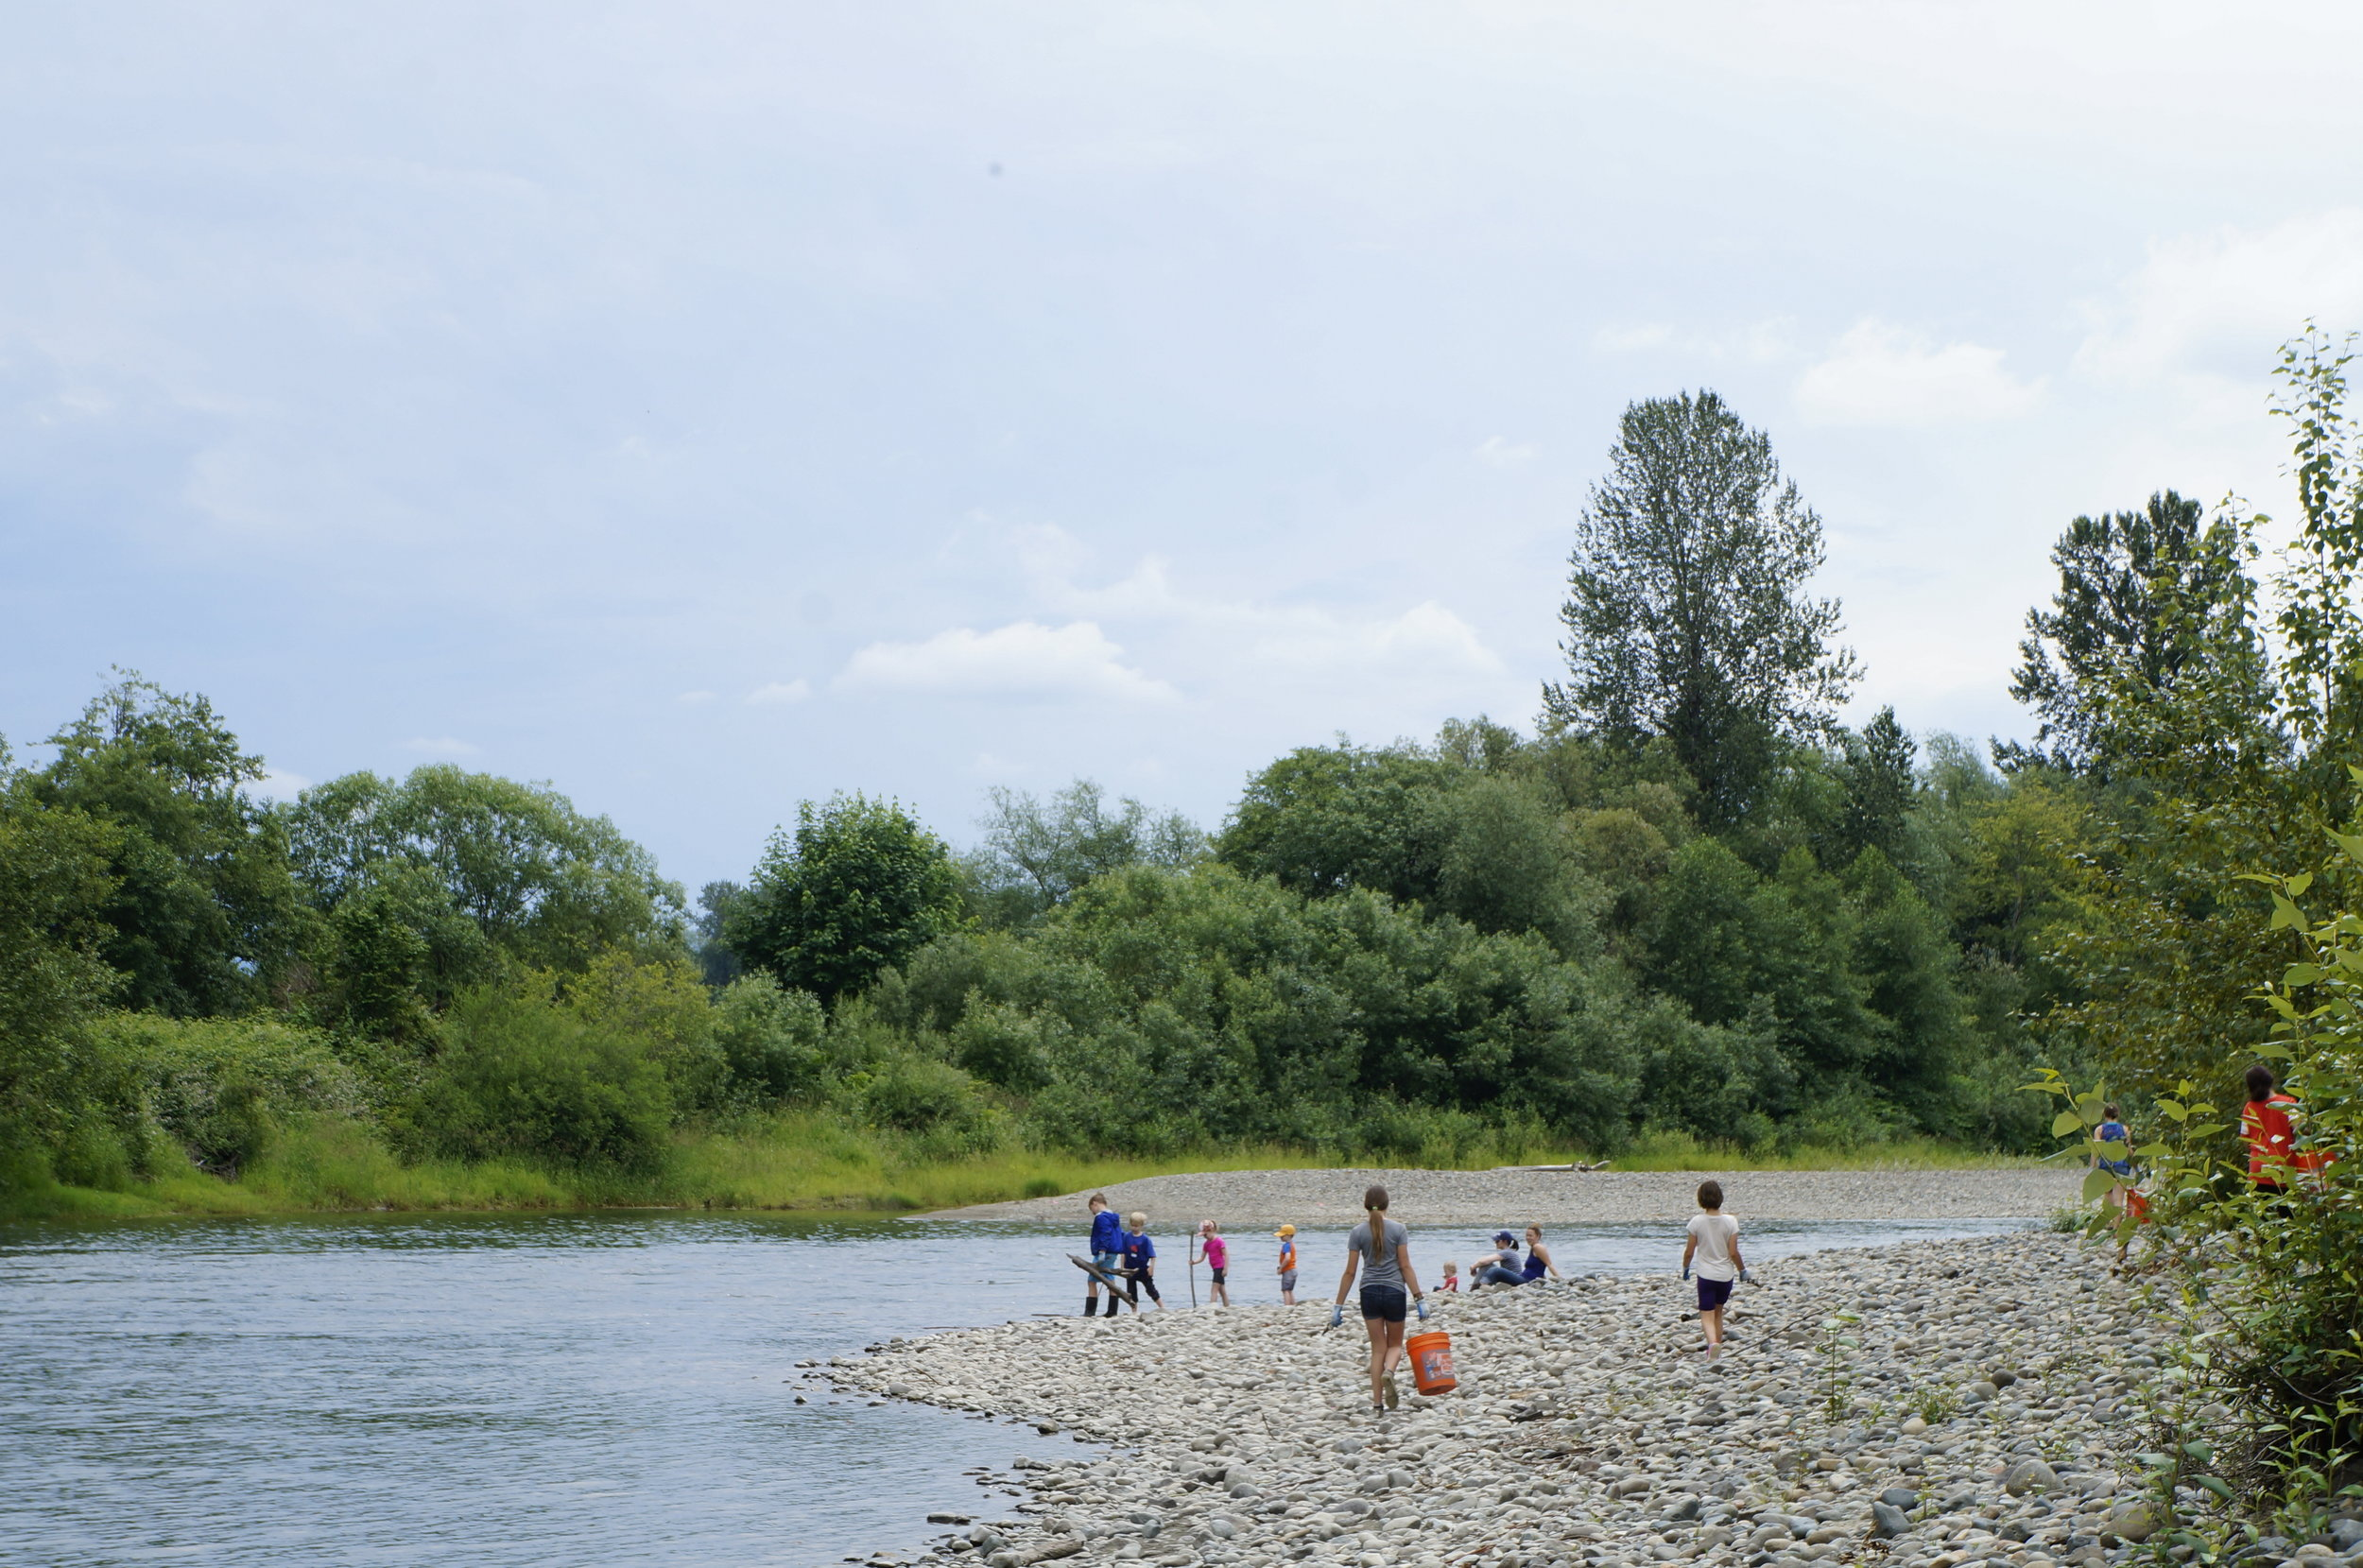 UPCOMING EVENTS for the Homeschool Stewardship Squad   (2nd Thursdays & 4th Wednesdays 11-2)   Thurs 7/11: Three Forks NA, N. Bend, KC Parks *swimming* Wed 7/24: Luther Burbank Park, Mercer Island *swimming* MTSGT Thurs 8/8: Luther Burbank Park, Mercer Island *swimming* MTSGT Wed 8/28: Tolt-Macdonald, Carnation, KC Parks *swimming*